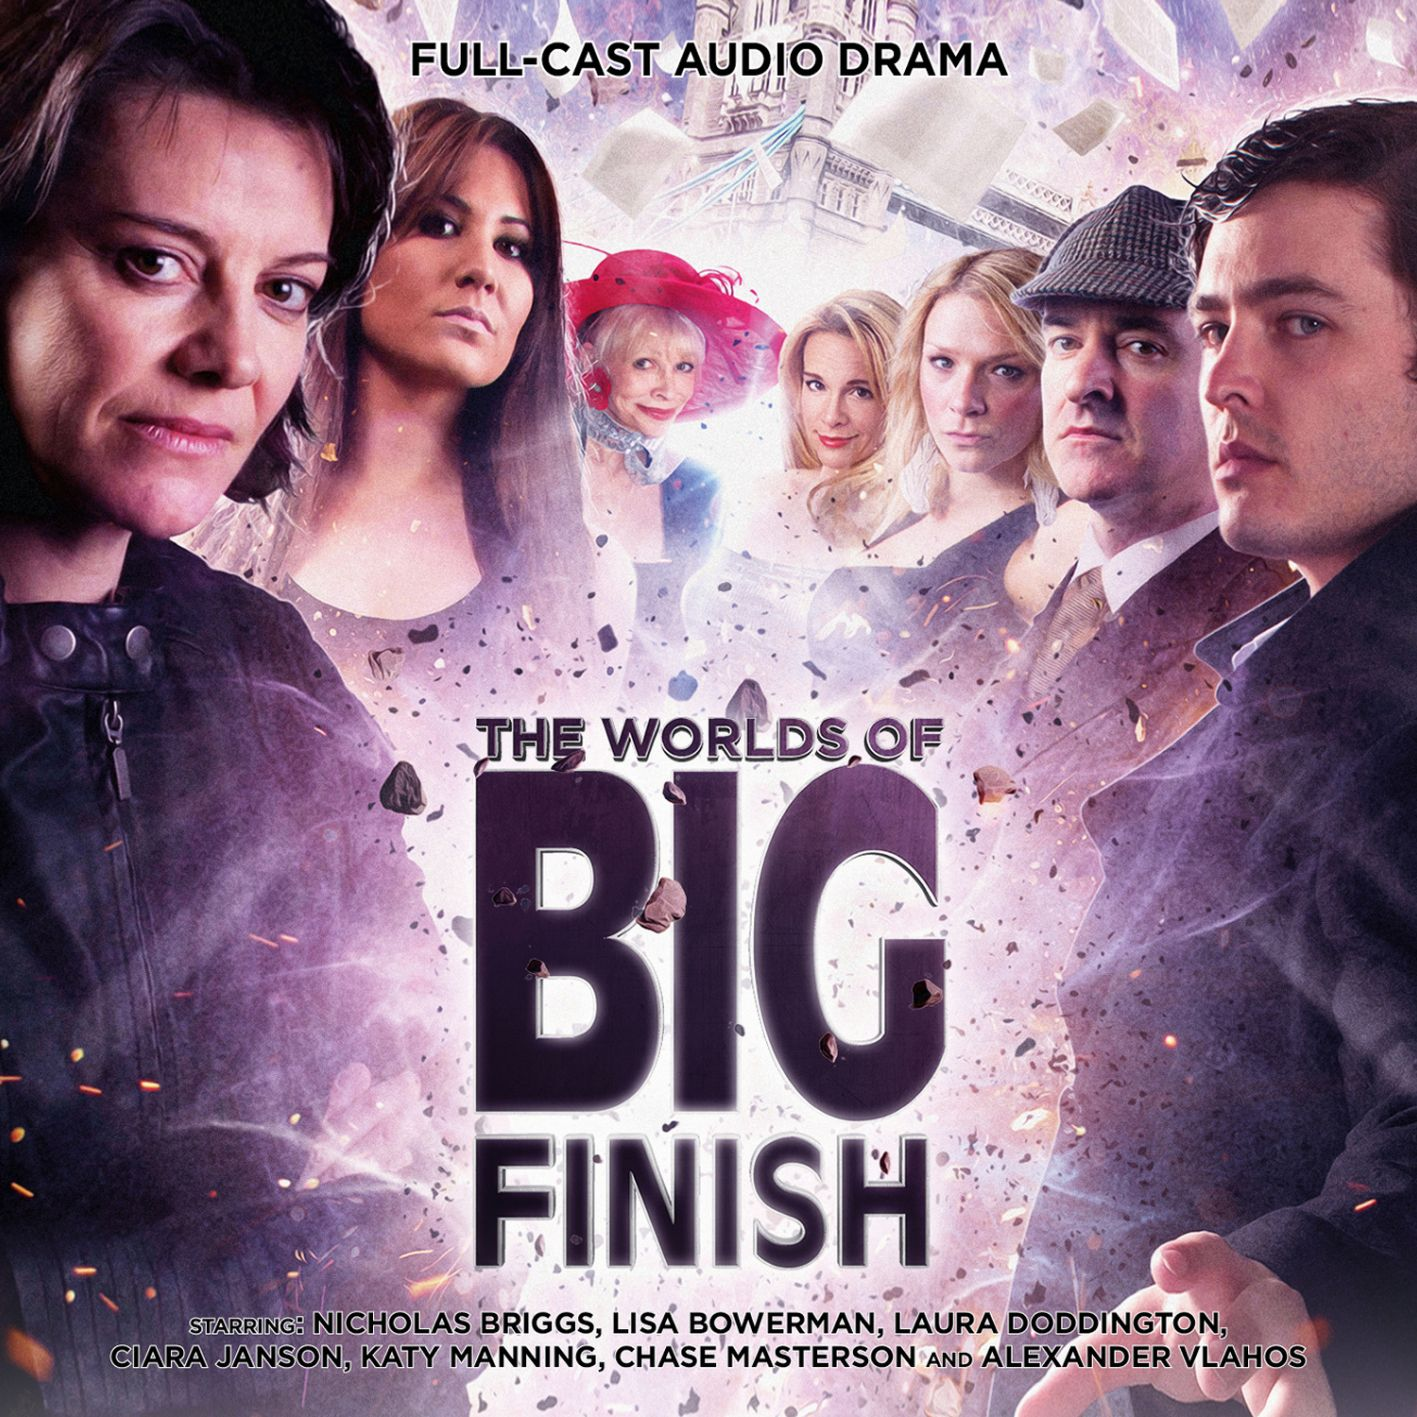 The Worlds of Big Finish (Credit: Big Finish)